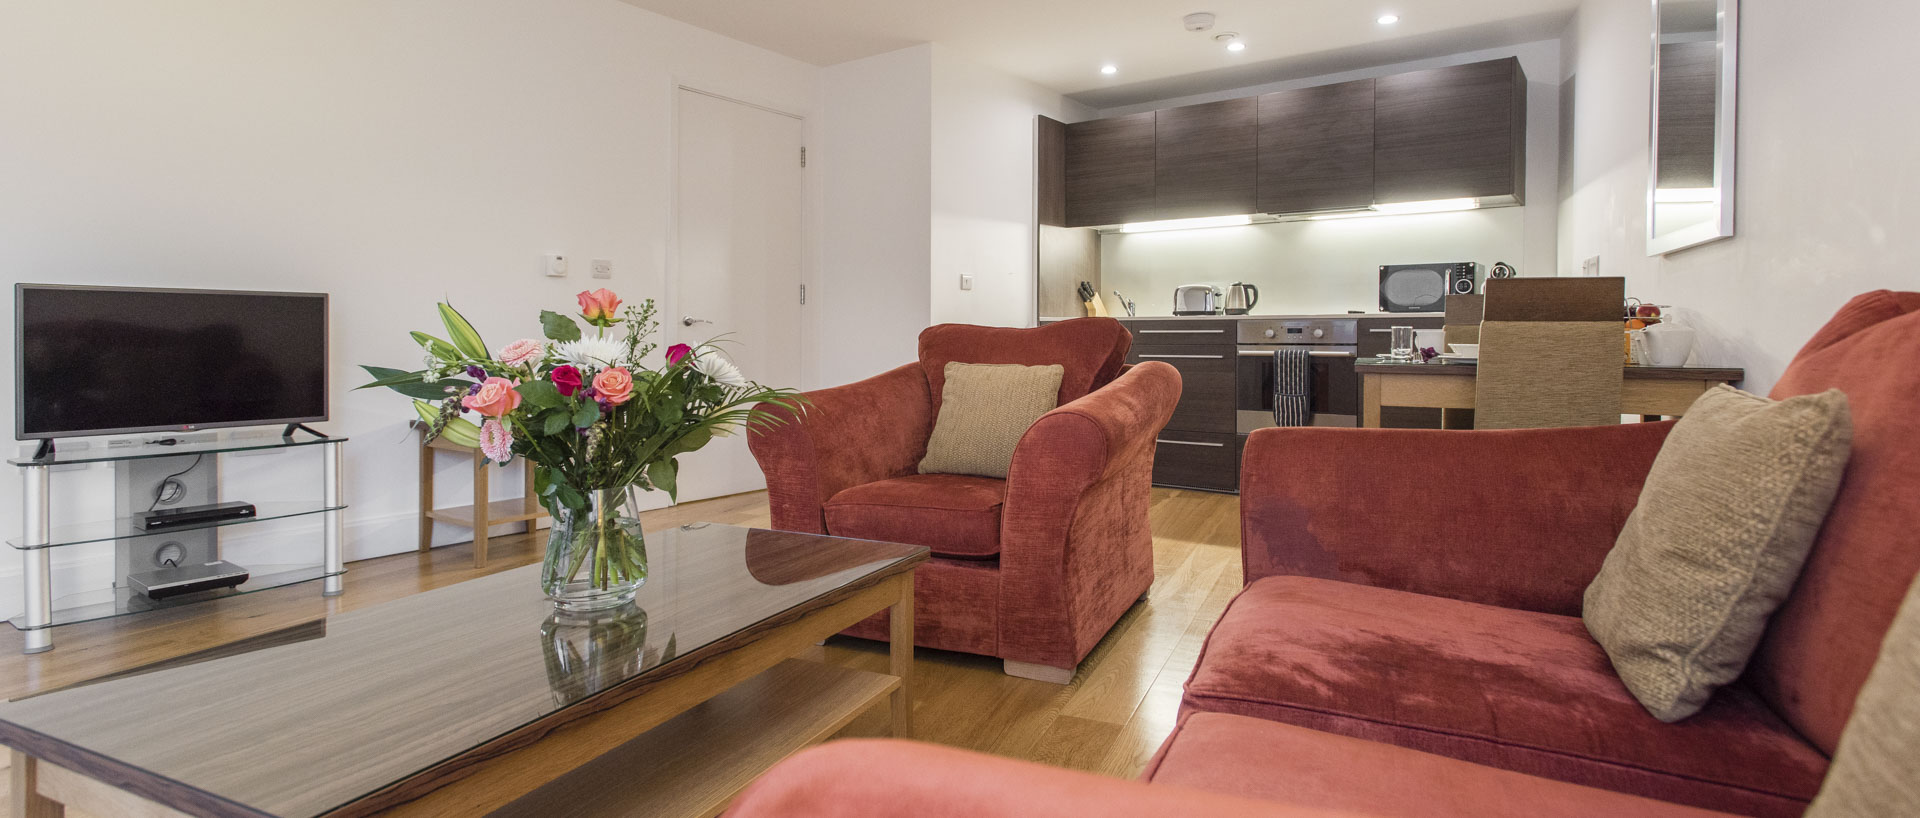 Light filled living space in a one bed apartment in PREMIER SUITES PLUS Cabot Circus